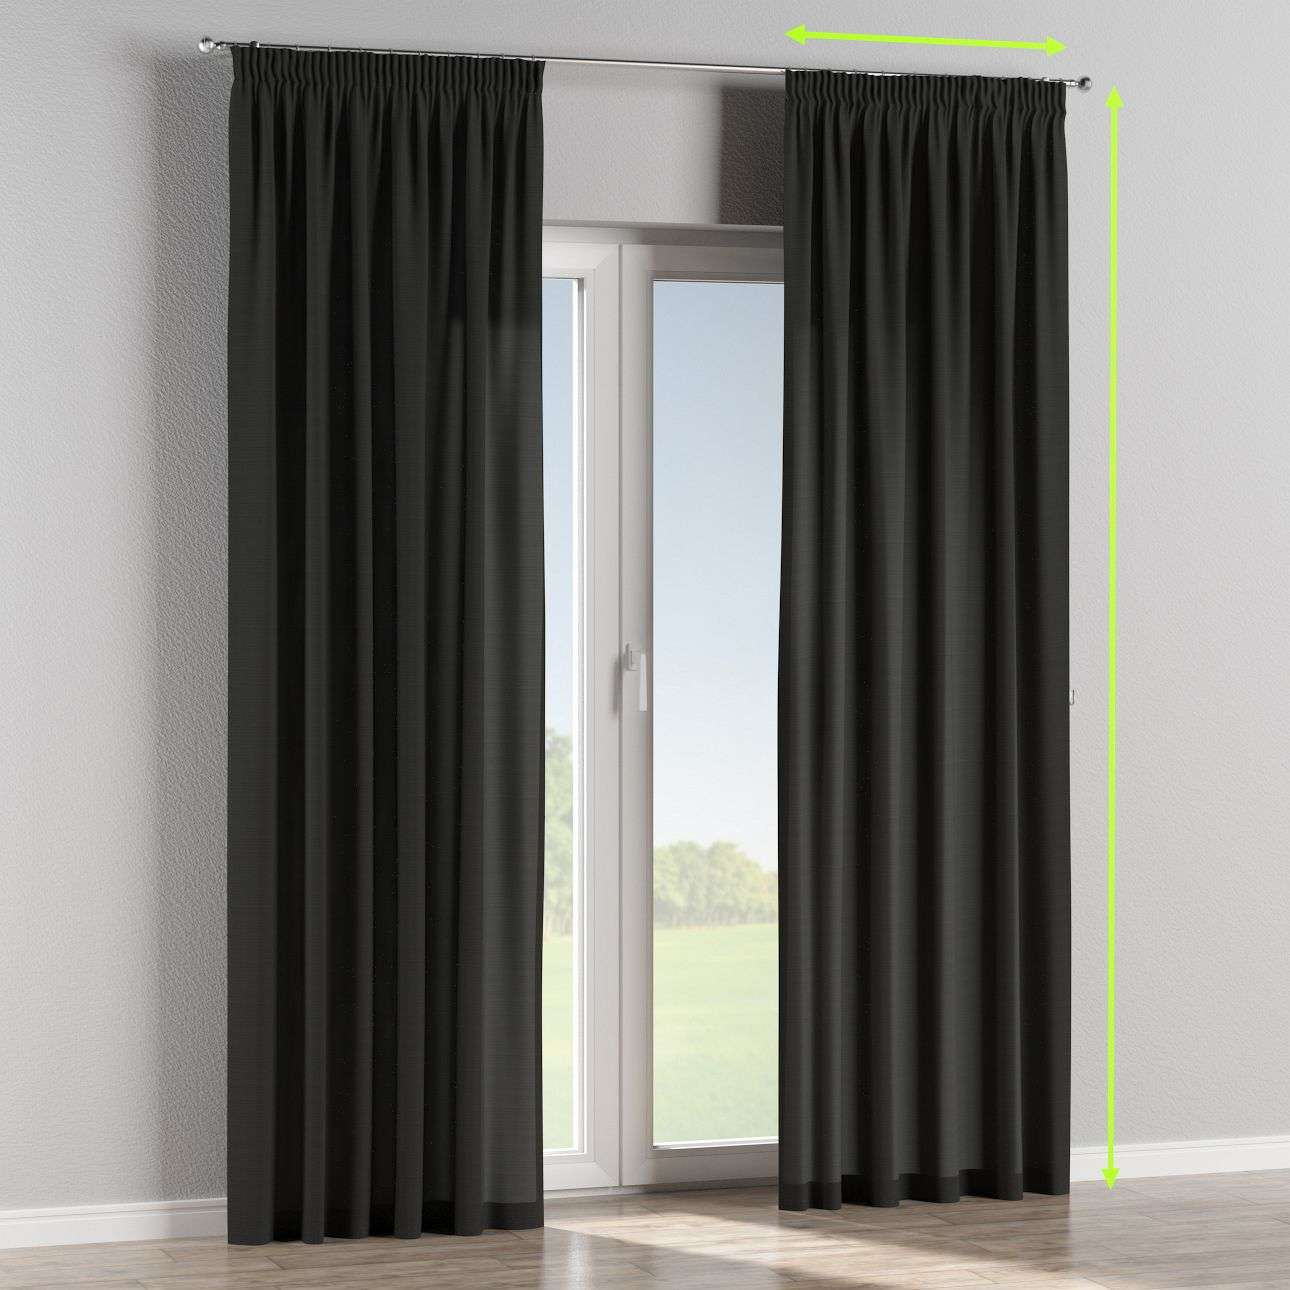 Pencil pleat curtain in collection Jupiter, fabric: 127-99